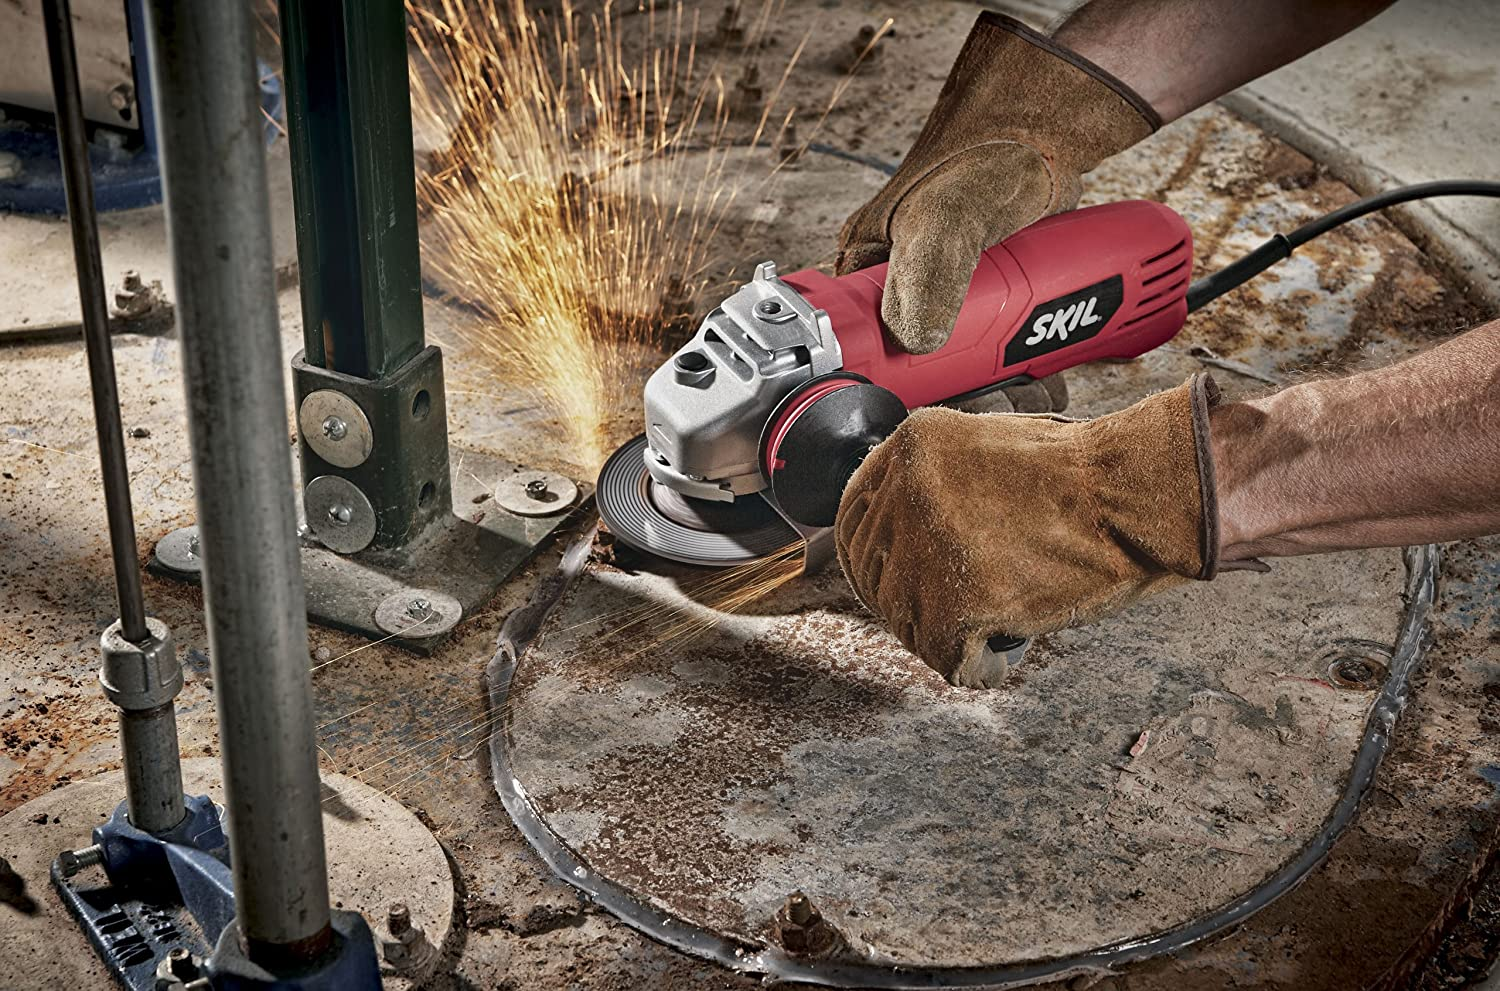 Skil 929601 75 412inch Paddle Switch Angle Grinder Power. Skil 929601 75 412inch Paddle Switch Angle Grinder Power Grinders Amazon. Wiring. Skil Bench Grinder Wiring Diagram At Scoala.co